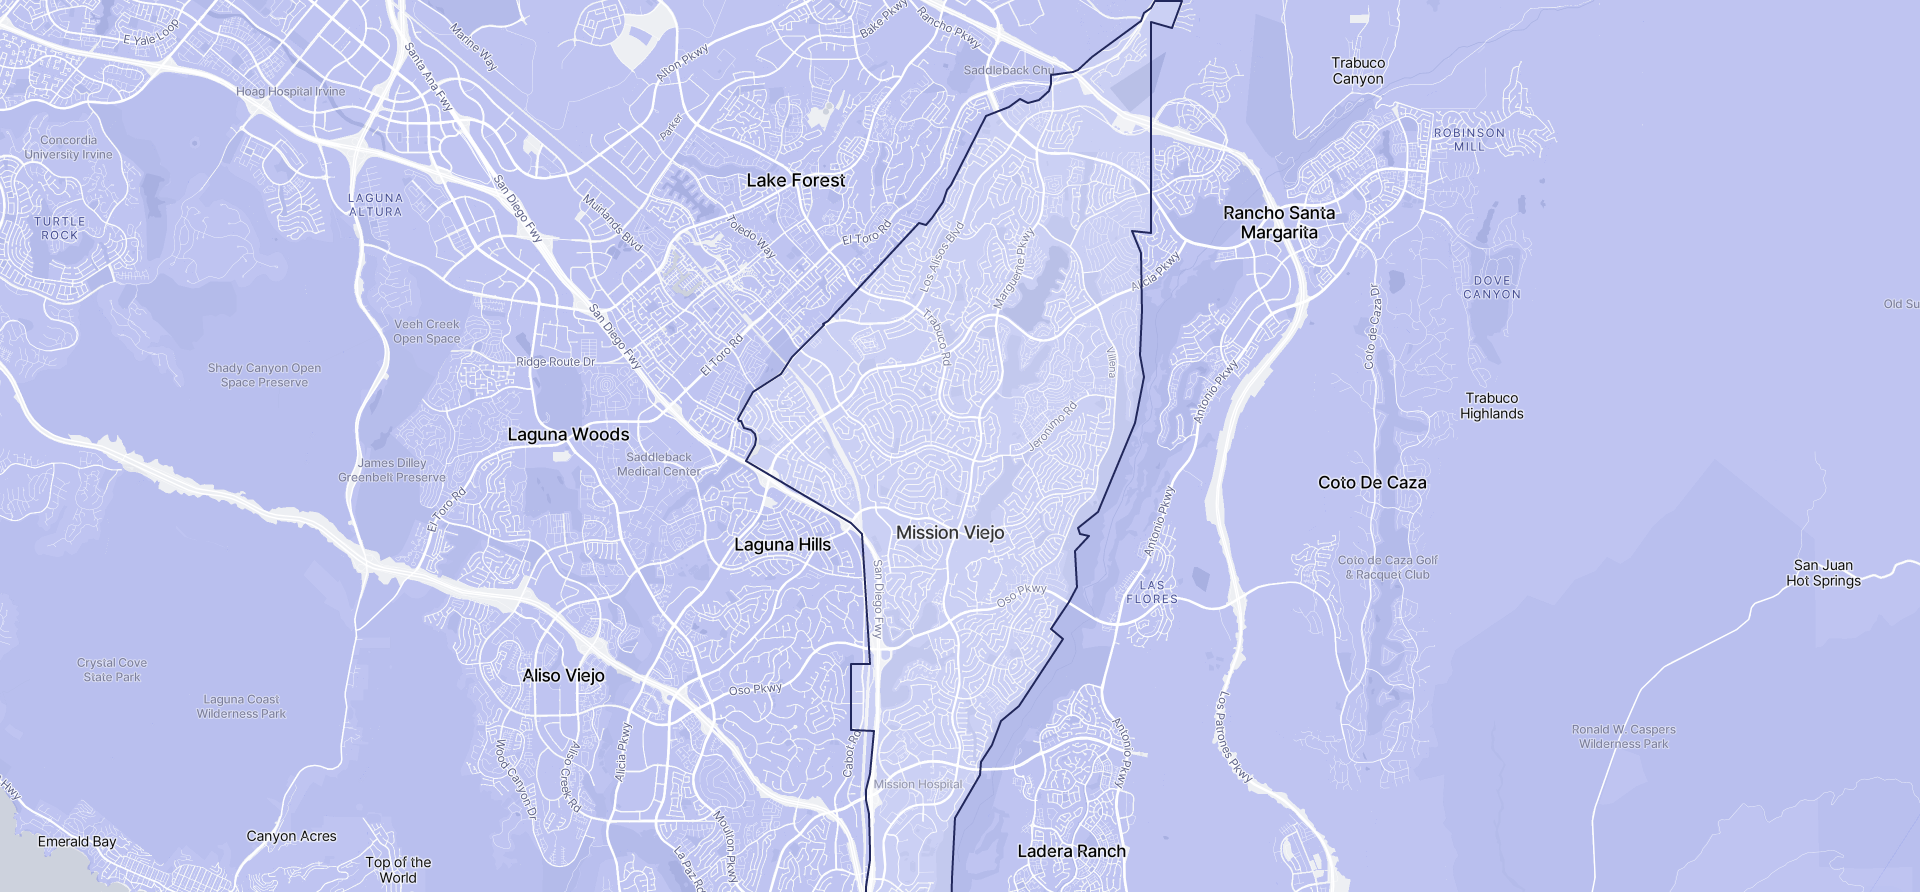 Image of Mission Viejo boundaries on a map.